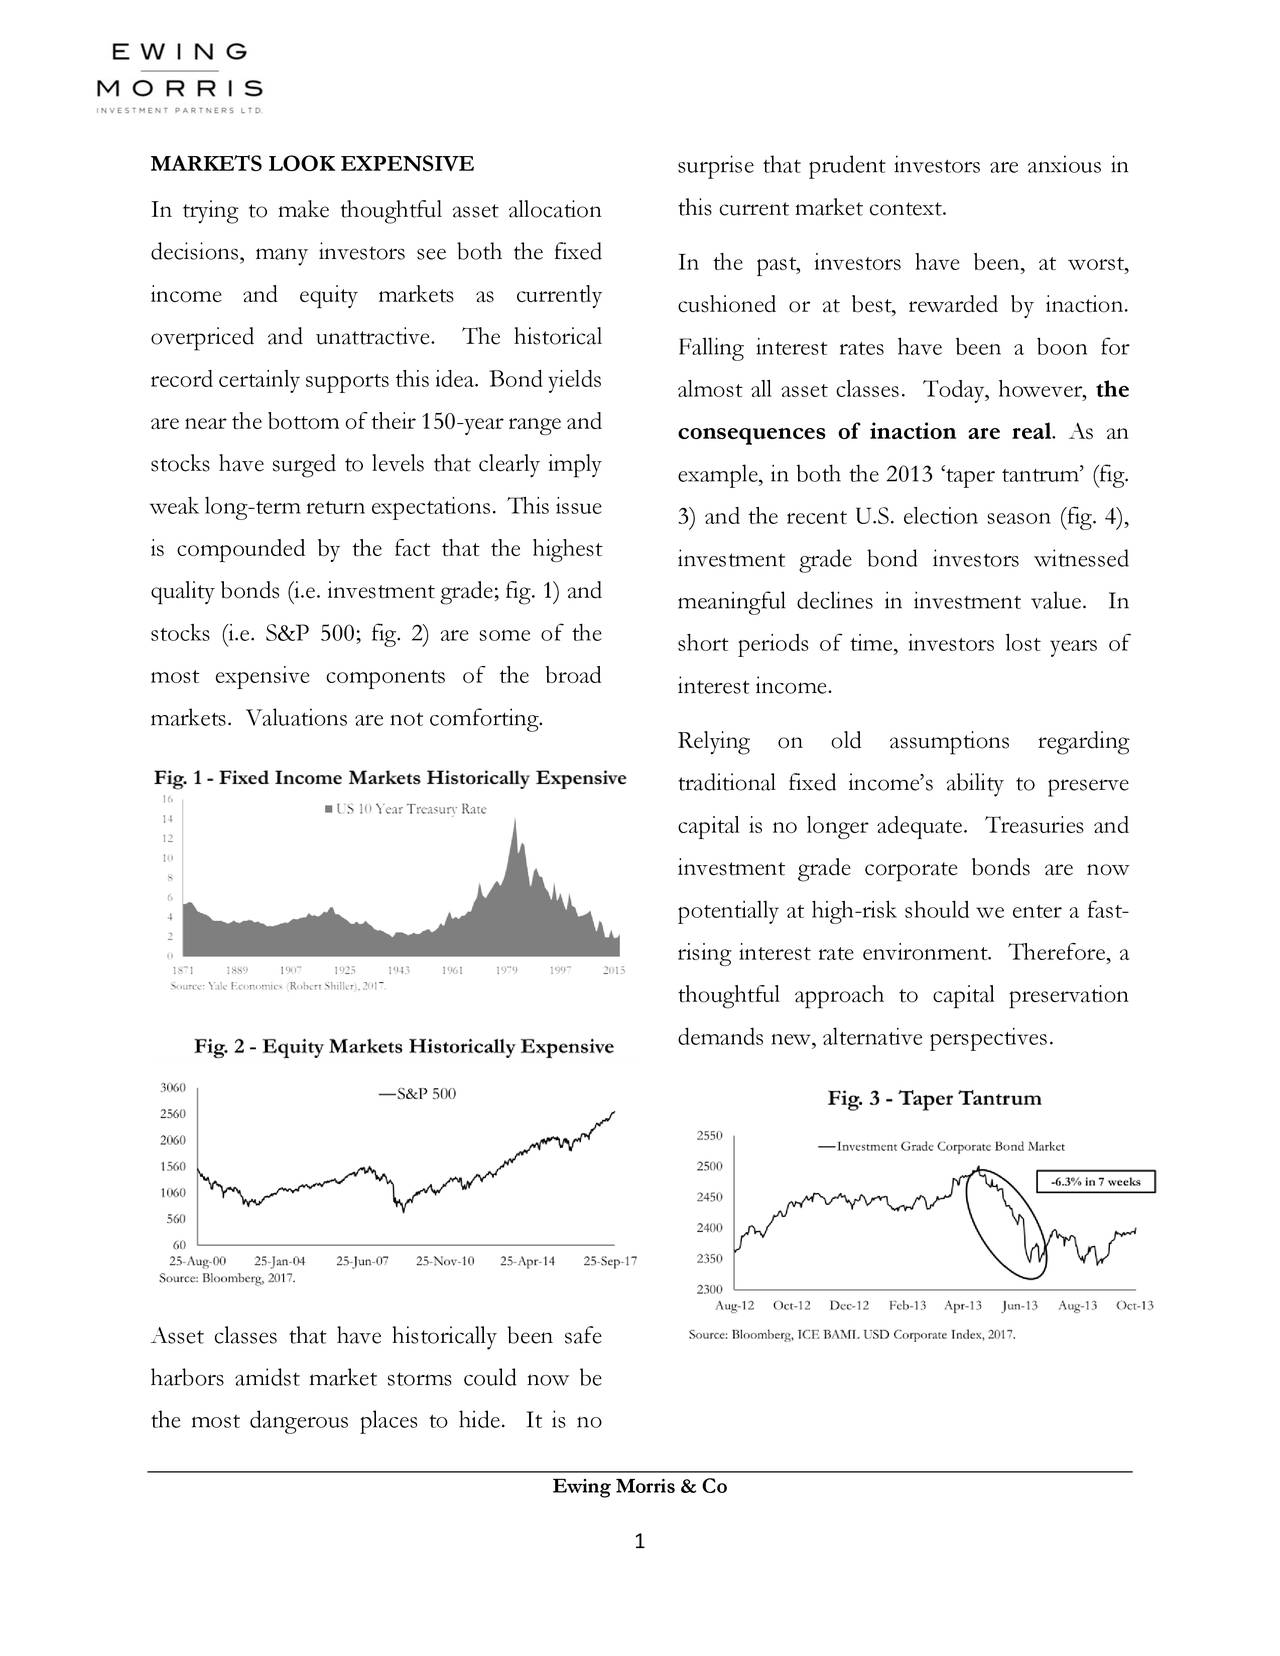 In trying to make thoughtful asset allocation this current market context. decisions, many investors see both the fixed In the past, investors have been, at worst, income and equity markets as currently cushioned or at best, rewarded by inaction. overpriced and unattractive. The historical Falling interest rates have been a boon for record certainly supports thisidea. Bondyields almost all asset classes. Today, however, the are near the bottom of their 150-year range and consequences of inaction are real. As an stocks have surged to levels that clearly imply example, in both the 2013 'taper tantrum' (fig. weak long-term return expectations. This issue 3) and the recent U.S. election season (fig. 4), is compounded by the fact that the highest investment grade bond investors witnessed quality bonds (i.e. investment grade; fig. 1) and meaningful declines in investment value. In stocks (i.e. S&P 500; fig. 2) are some of the short periods of time, investors lost years of most expensive components of the broad interest income. markets. Valuations are not comforting. Relying on old assumptions regarding traditional fixed income's ability to preserve capital is no longer adequate. Treasuries and investment grade corporate bonds are now potentially at high-risk should we enter a fast- rising interest rate environment. Therefore, a thoughtful approach to capital preservation demands new, alternative perspectives. Asset classes that have historically been safe harbors amidst market storms could now be the most dangerous places to hide. It is no Ewing Morris & Co 1